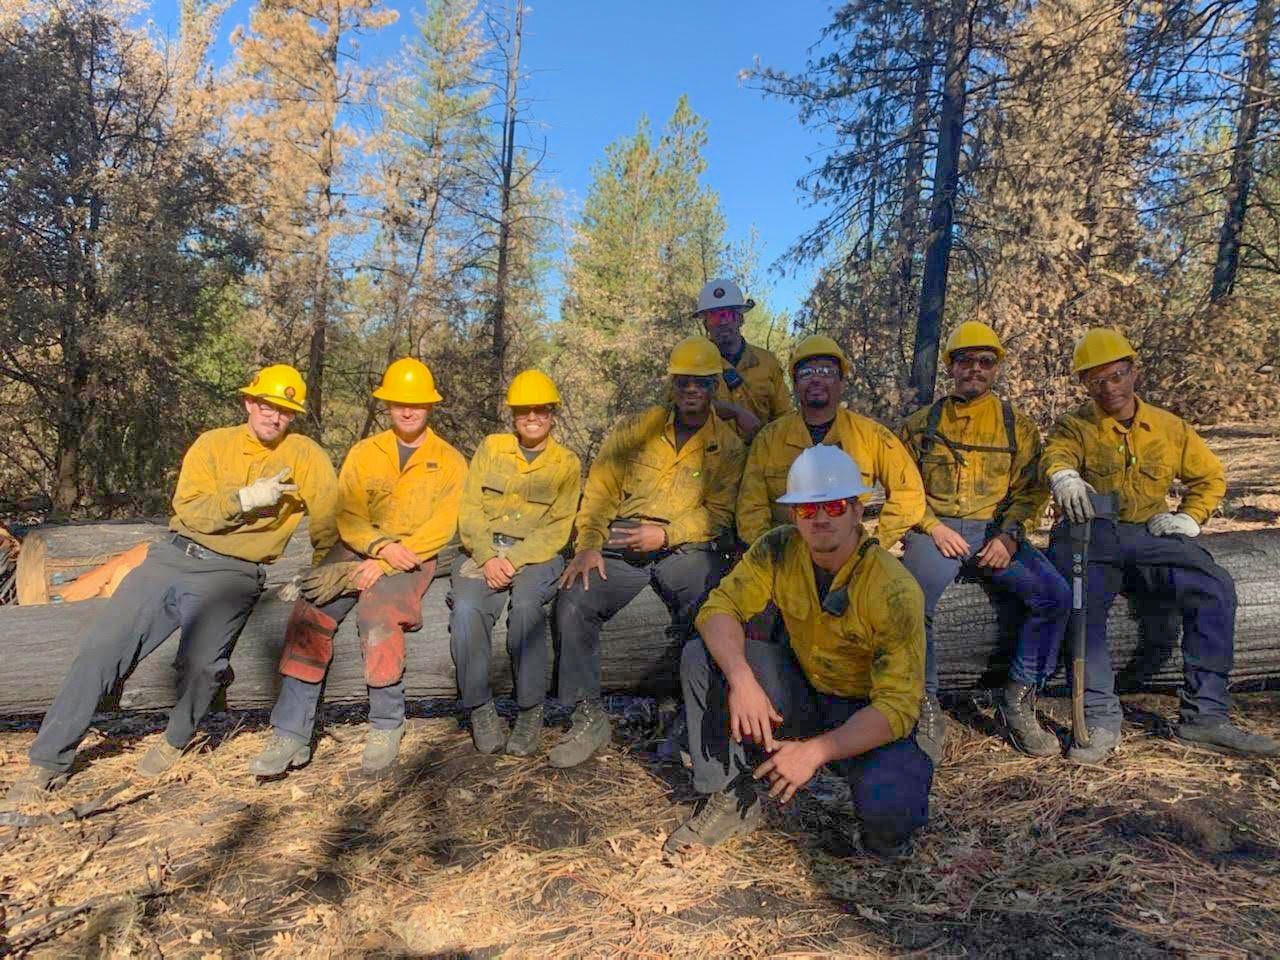 A Forest and Fire Recruitment Program crew takes a break during a fire prevention/defensible space project.